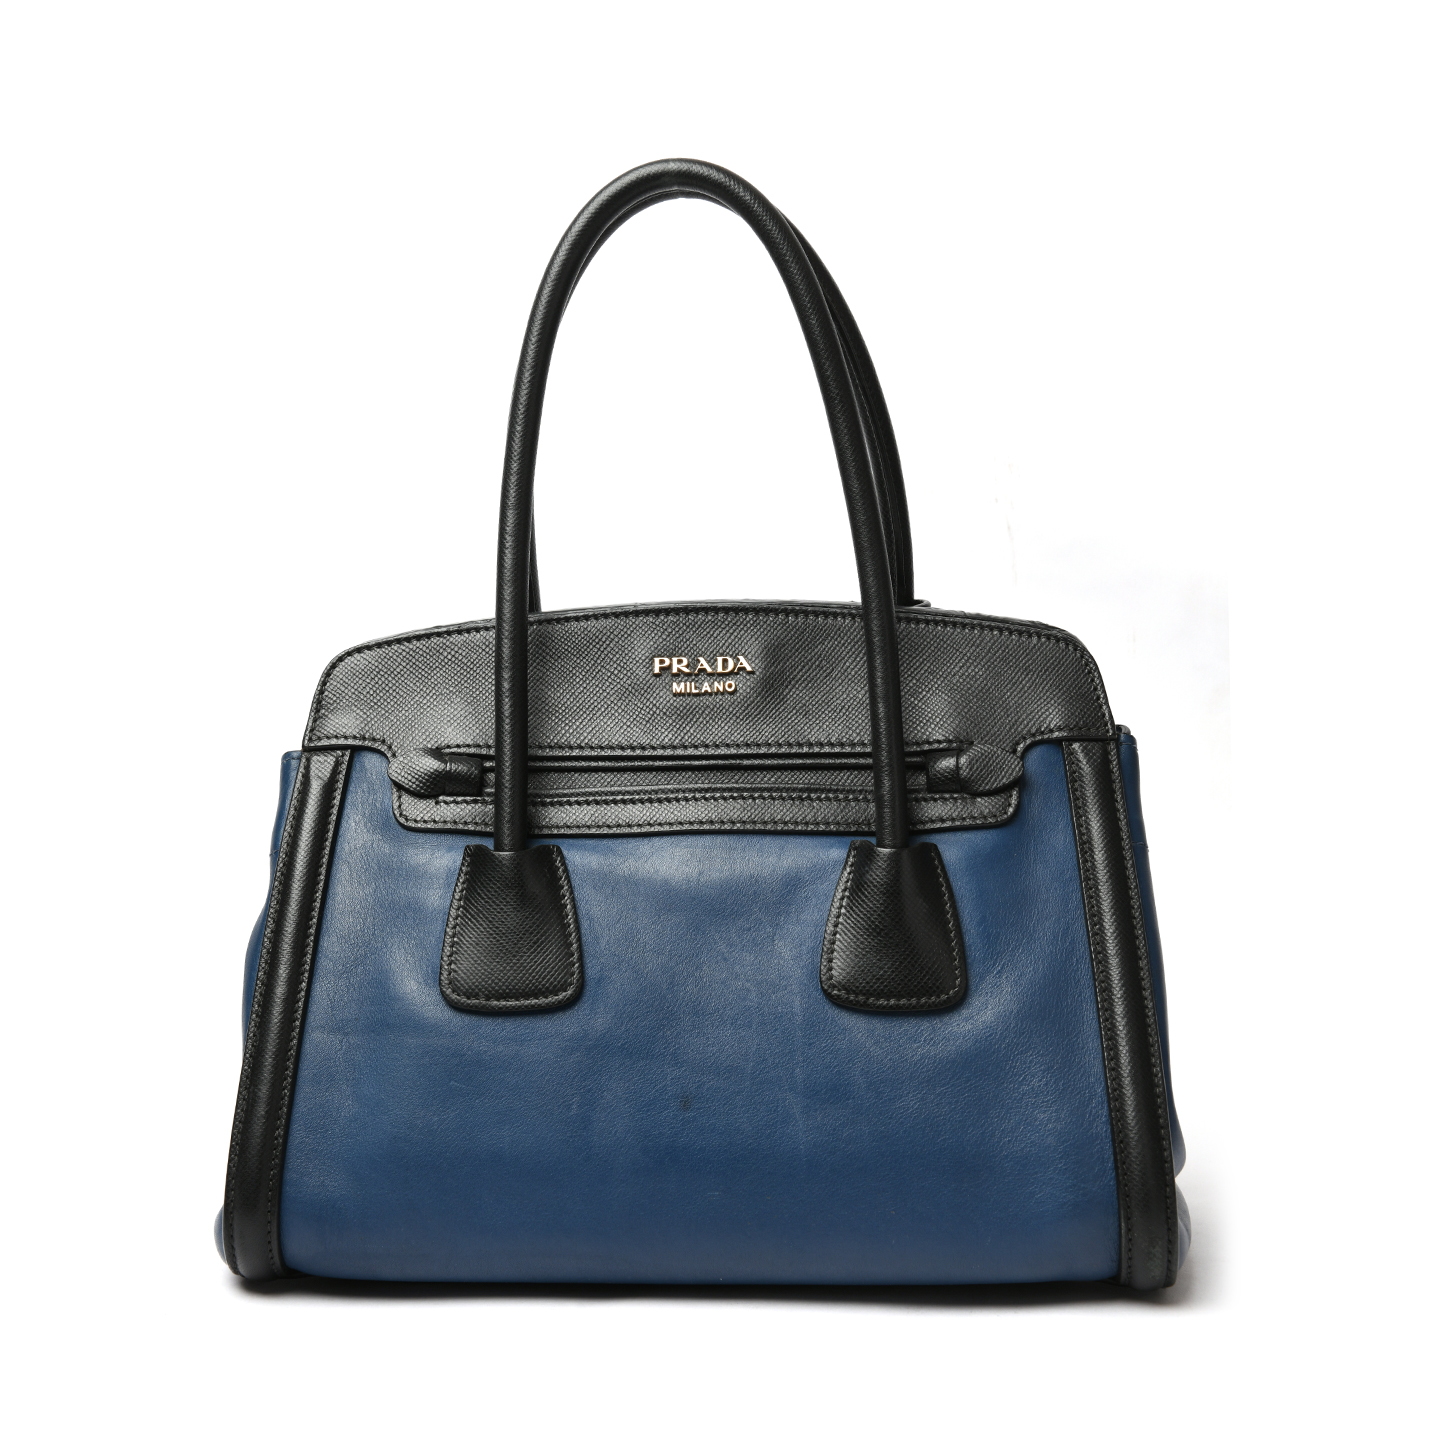 Prada City Calf Saffiano Cuir Large Satchel 01